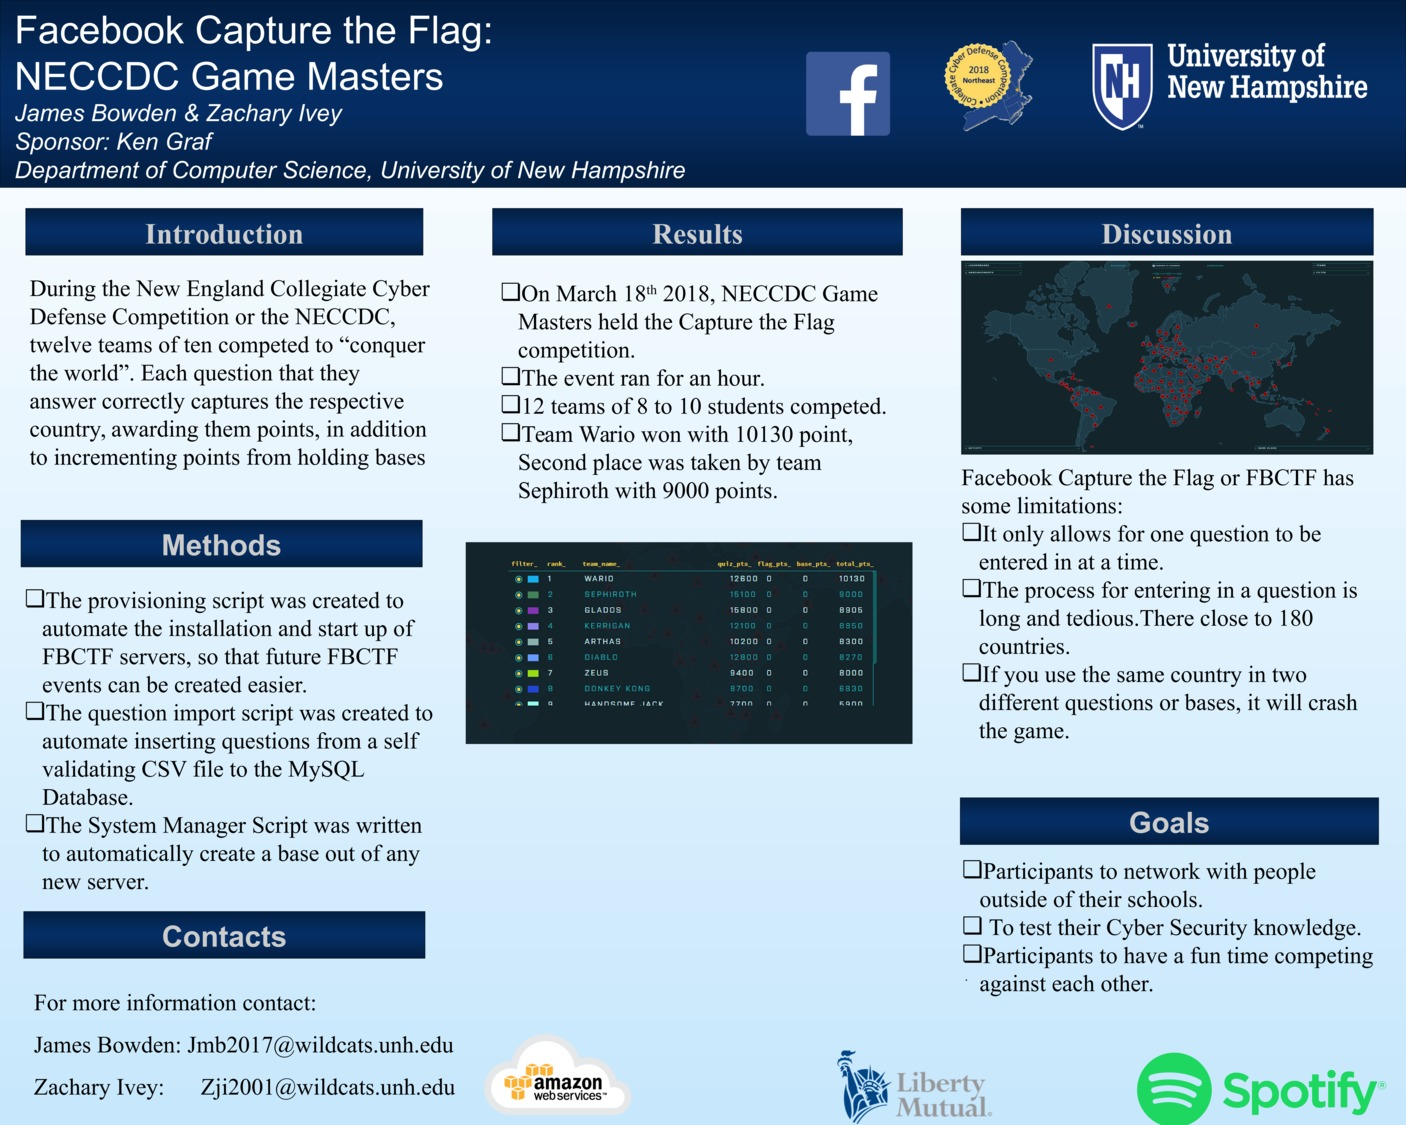 Facebook Capture The Flag: Neccdc Game Masters by jmb2017